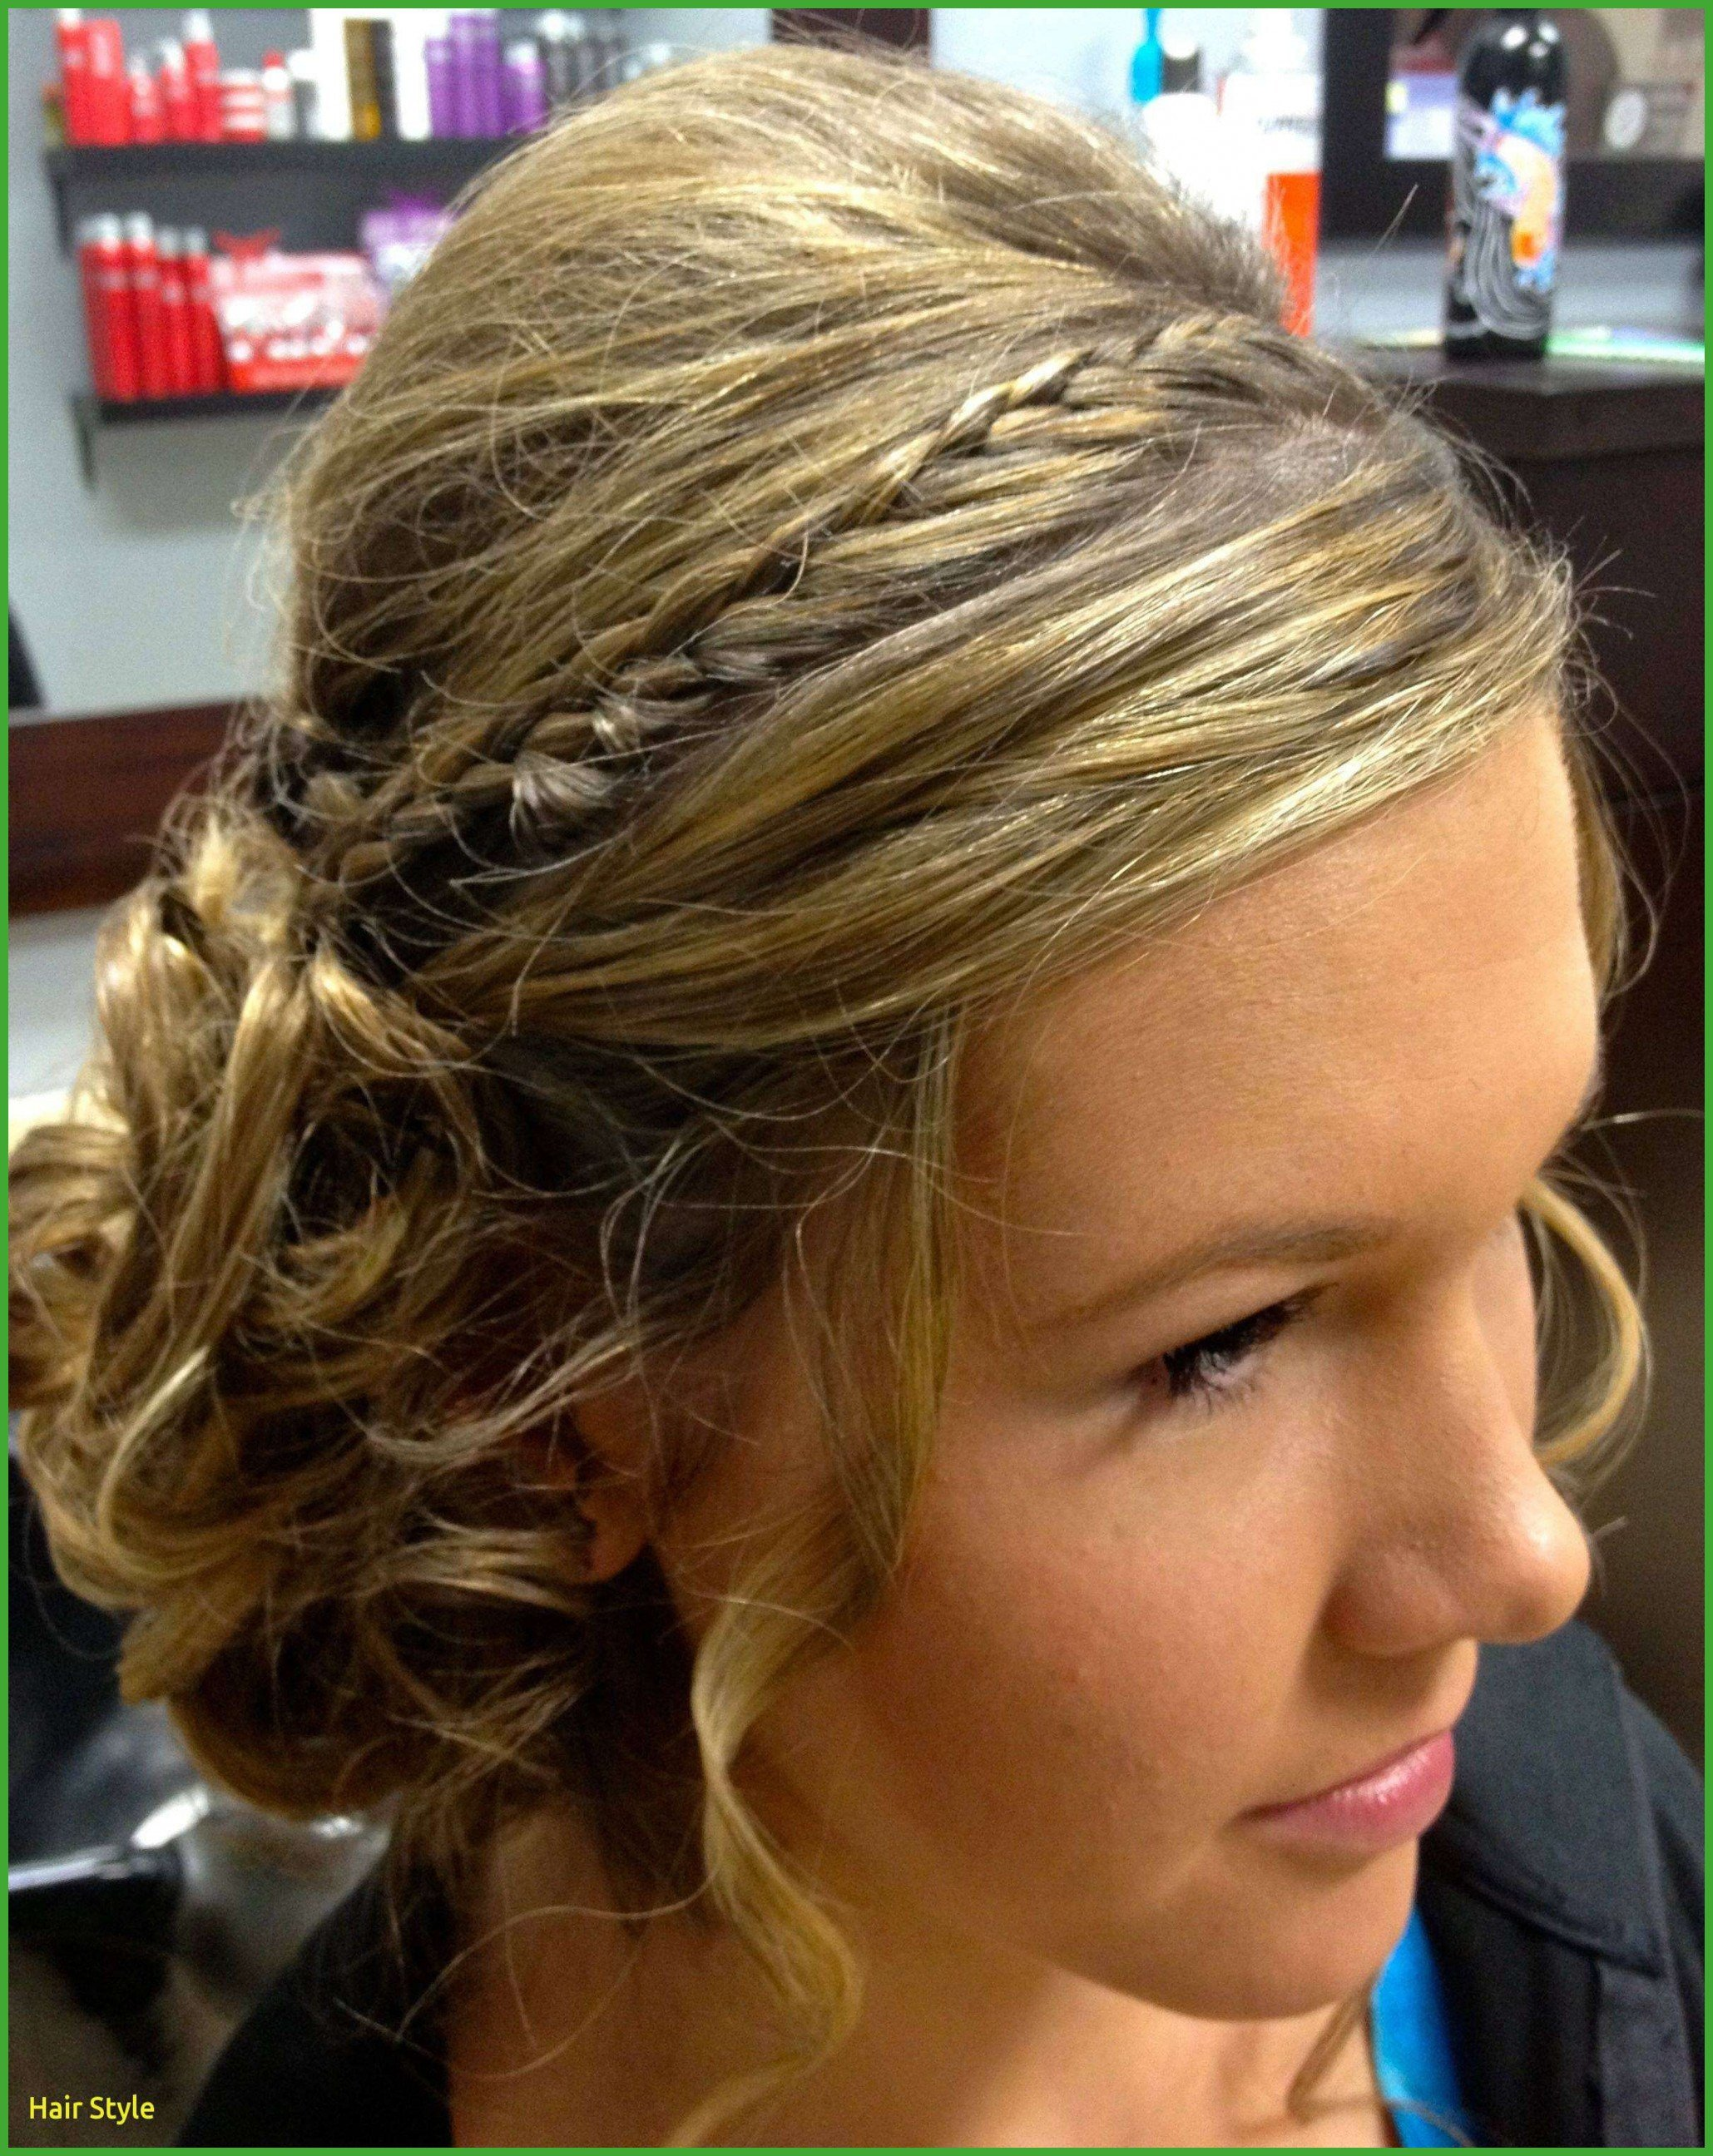 The Best Prom Hairstyles Tied Up Www Oneazulboracay Com Pictures